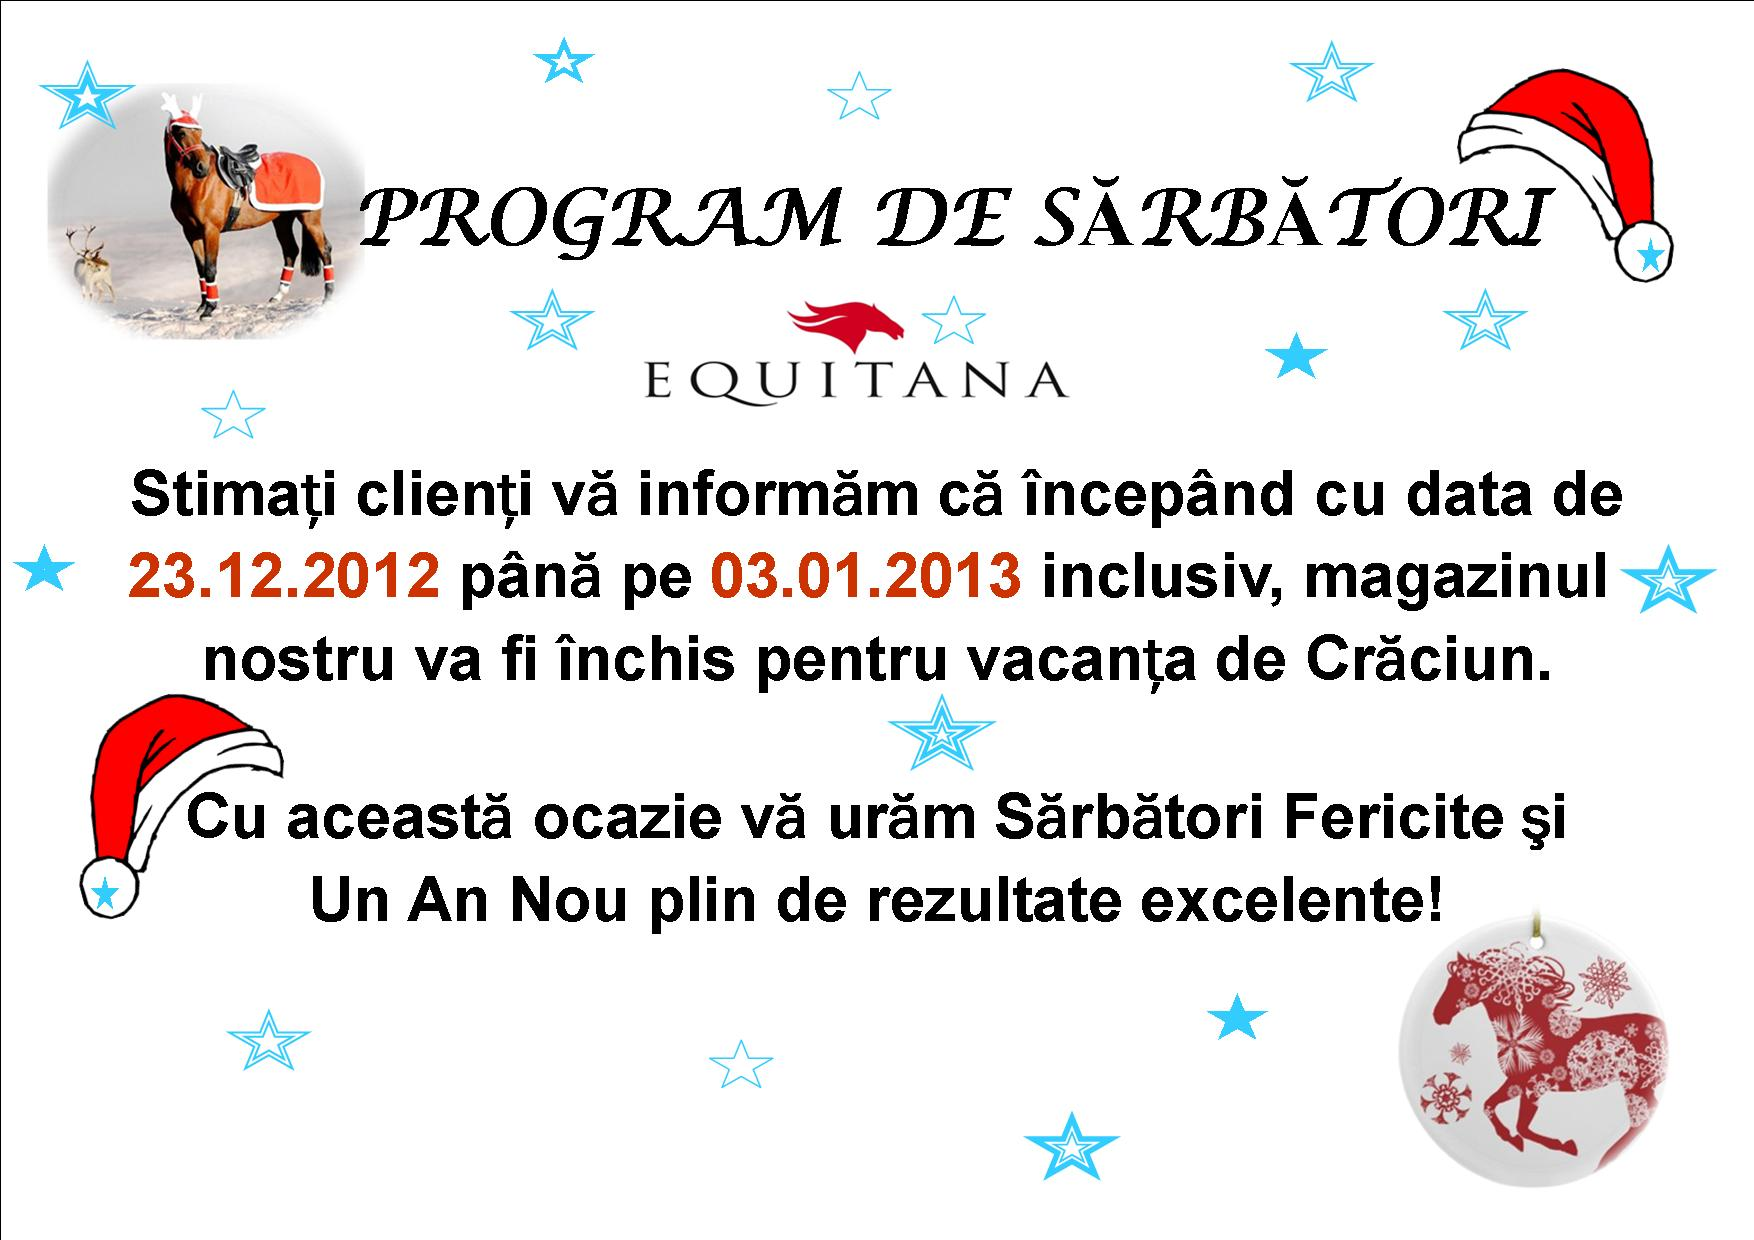 IMPORTANT: PROGRAM DE SARBATORI DEC. 2012 EQUITANA